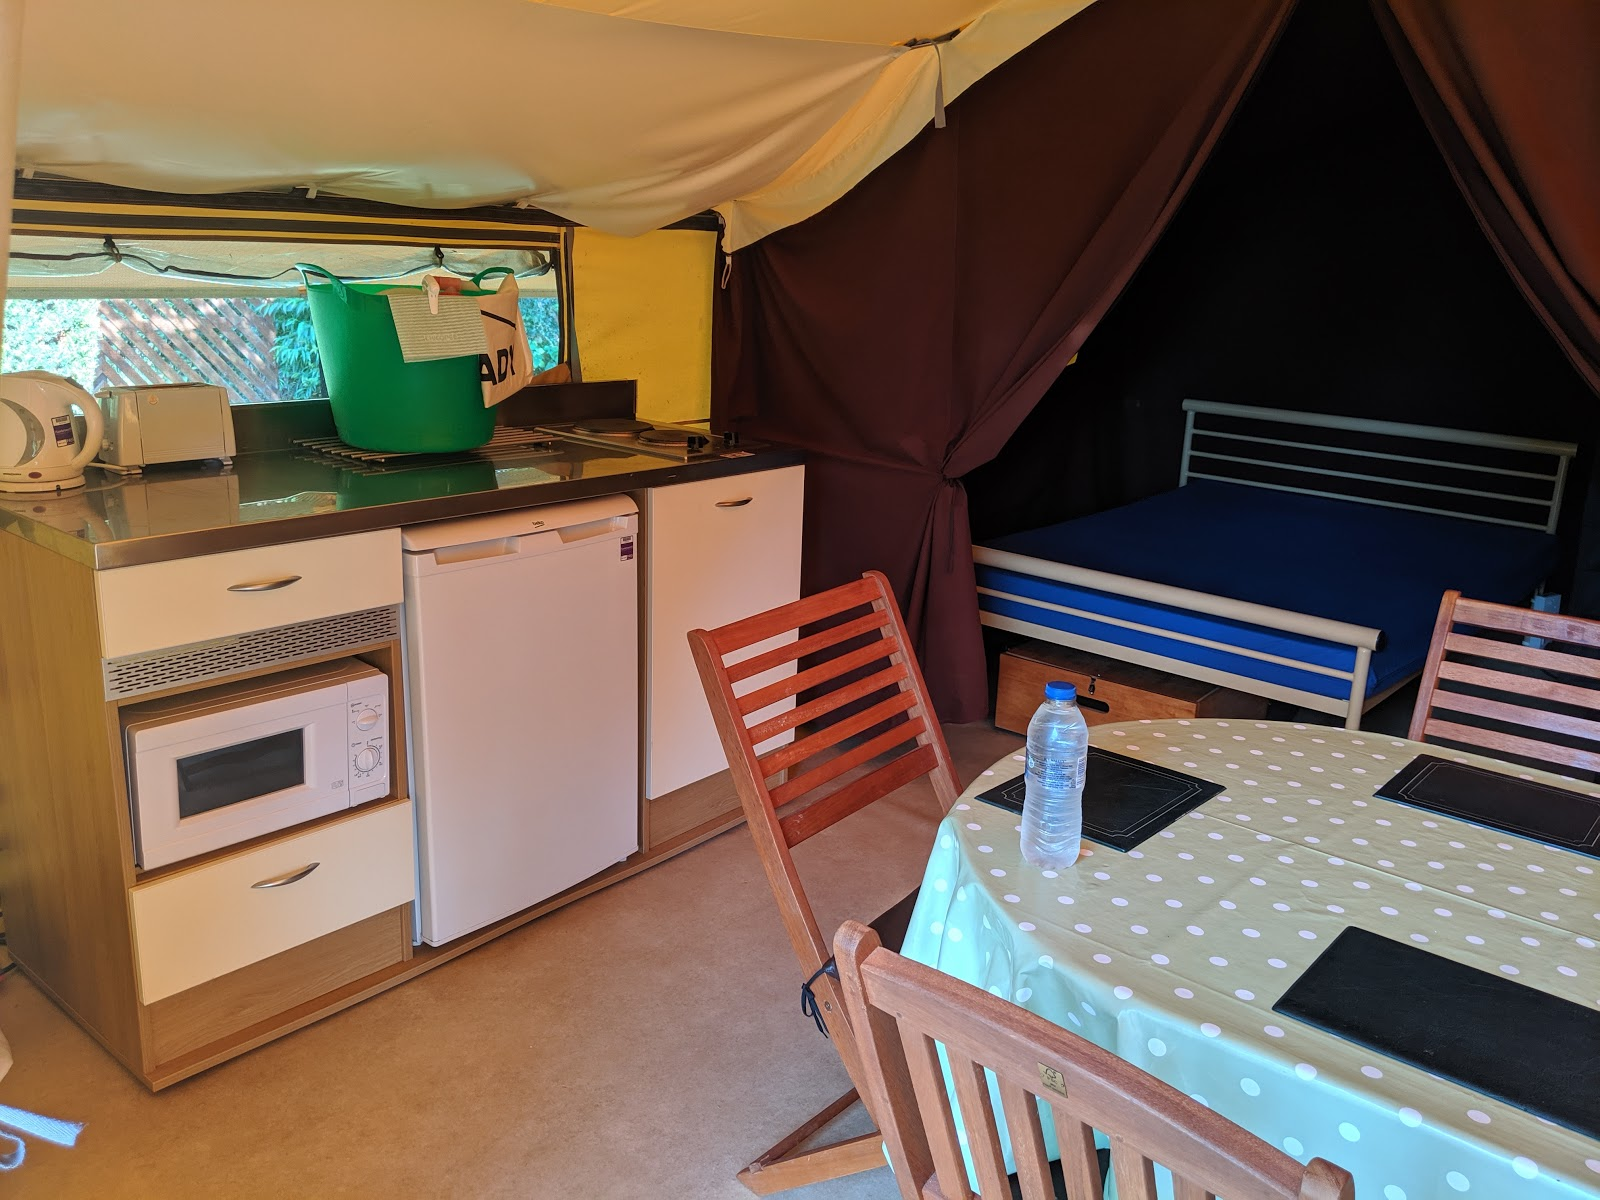 Ready Camp Horsley Review : Glamping near LEGOLAND and Chessington World of Adventures - tent kitchen area